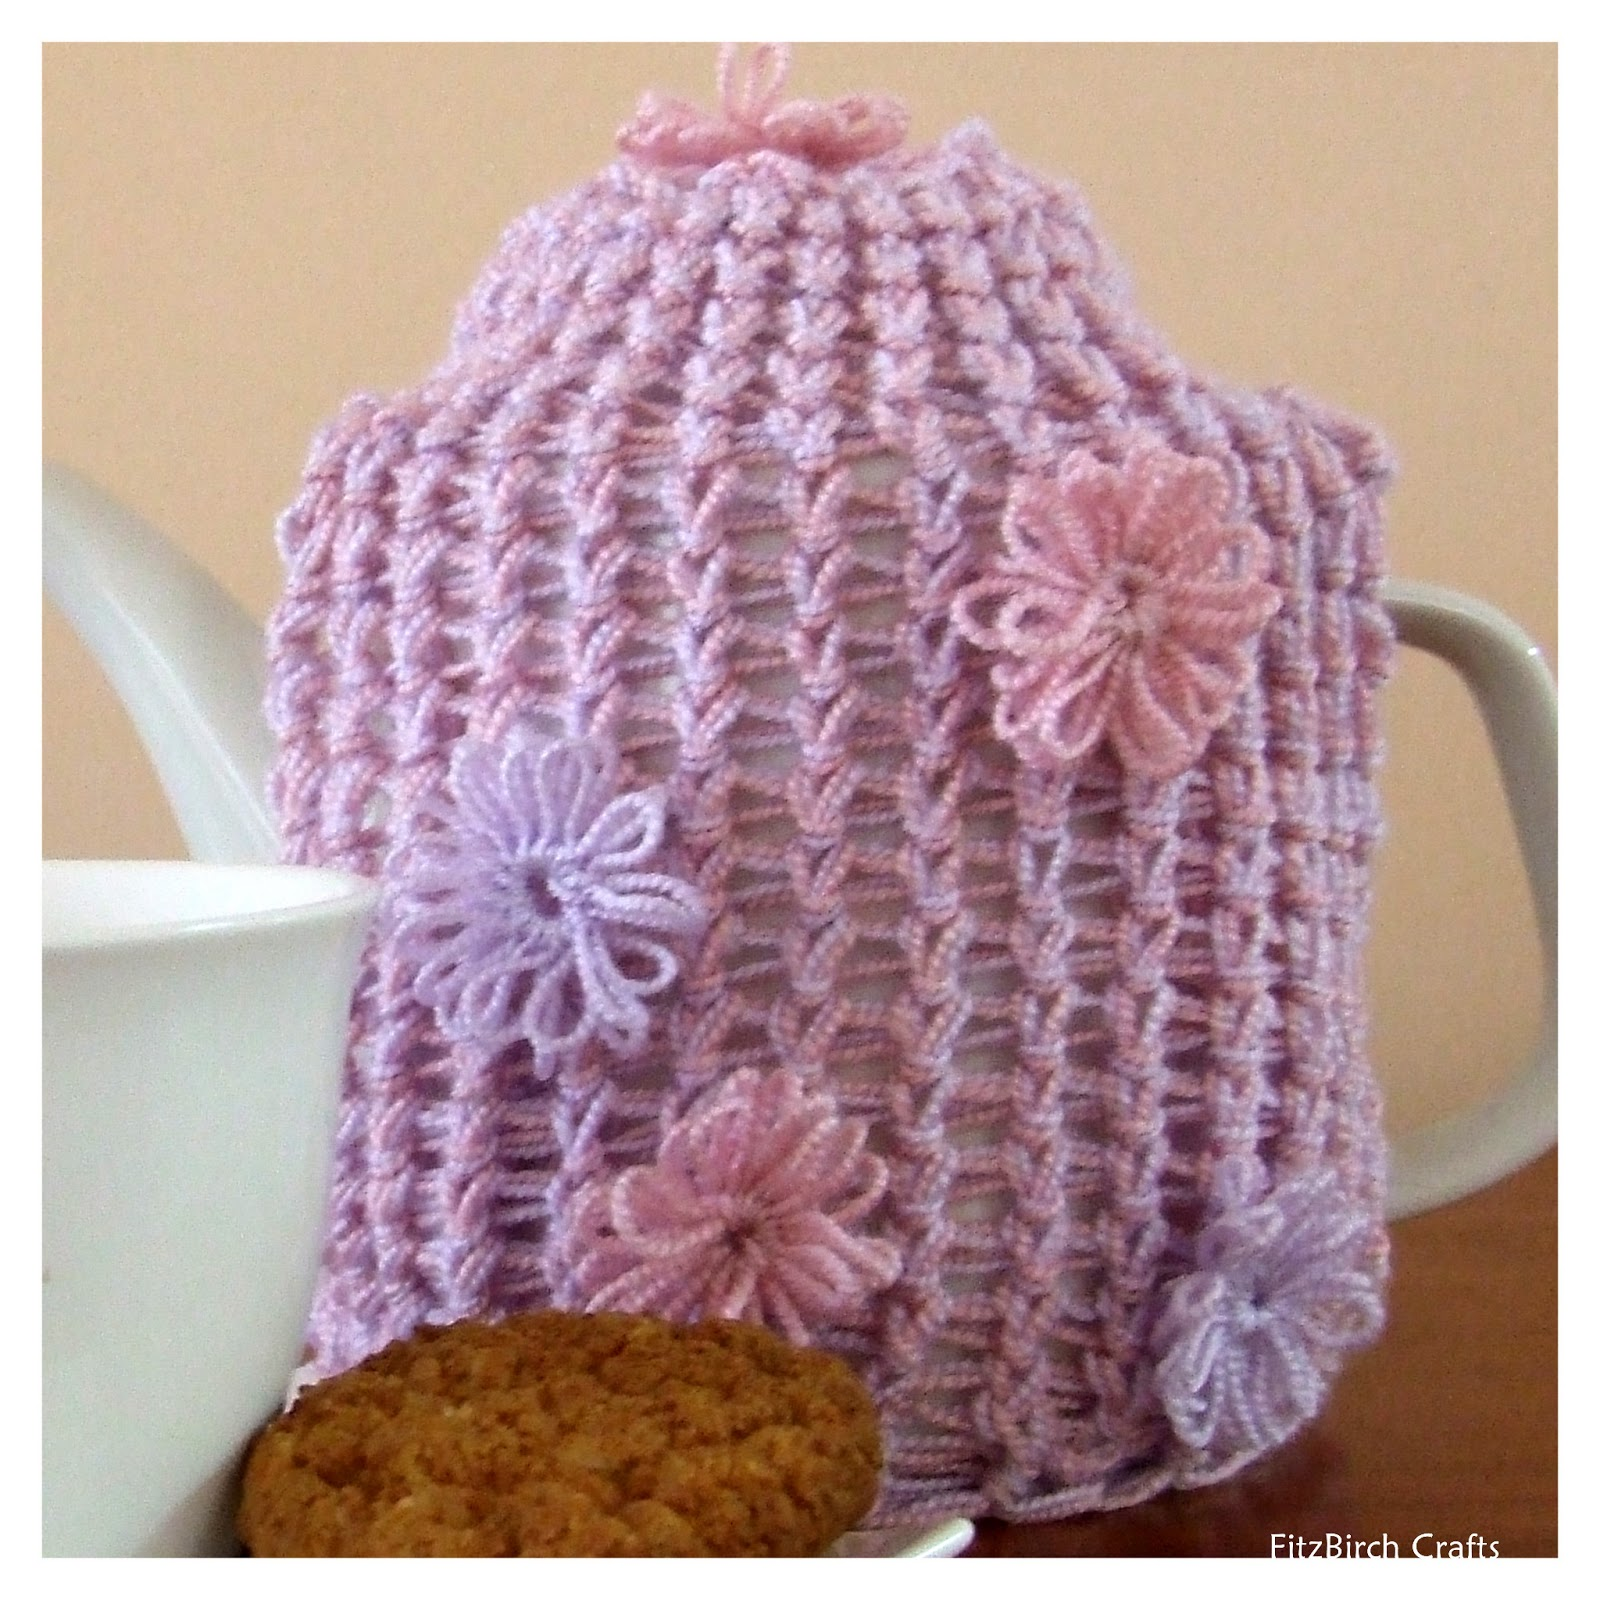 Patterns For Knitting Looms : FitzBirch Crafts: Loom Knit Tea Cosy